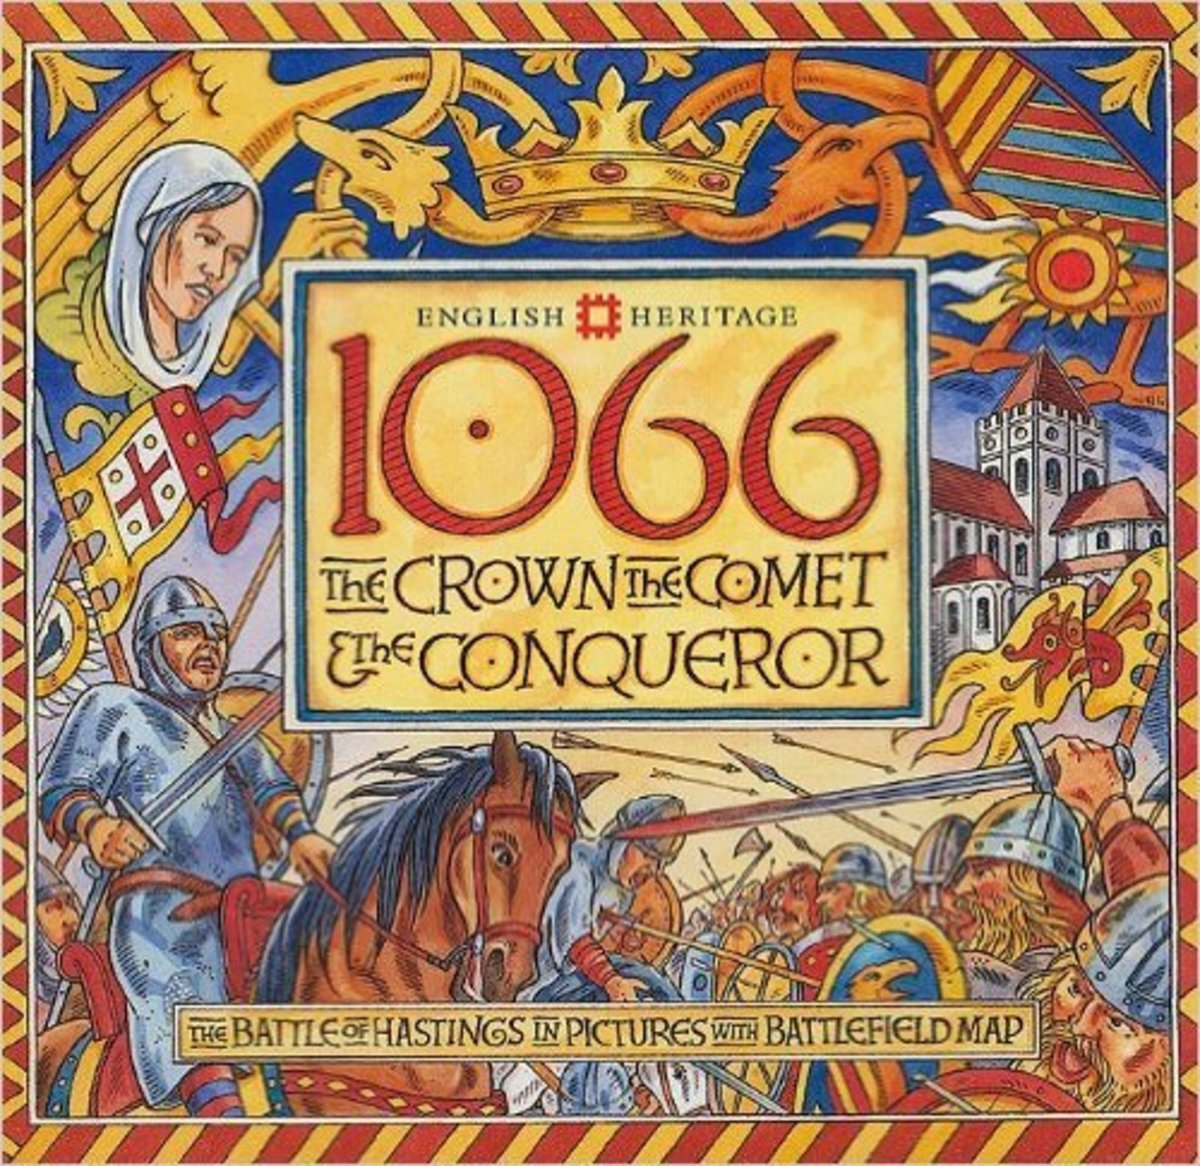 1066: The Crown, the Comet and the Conqueror by David Hobbs - All images are from amazon.com.